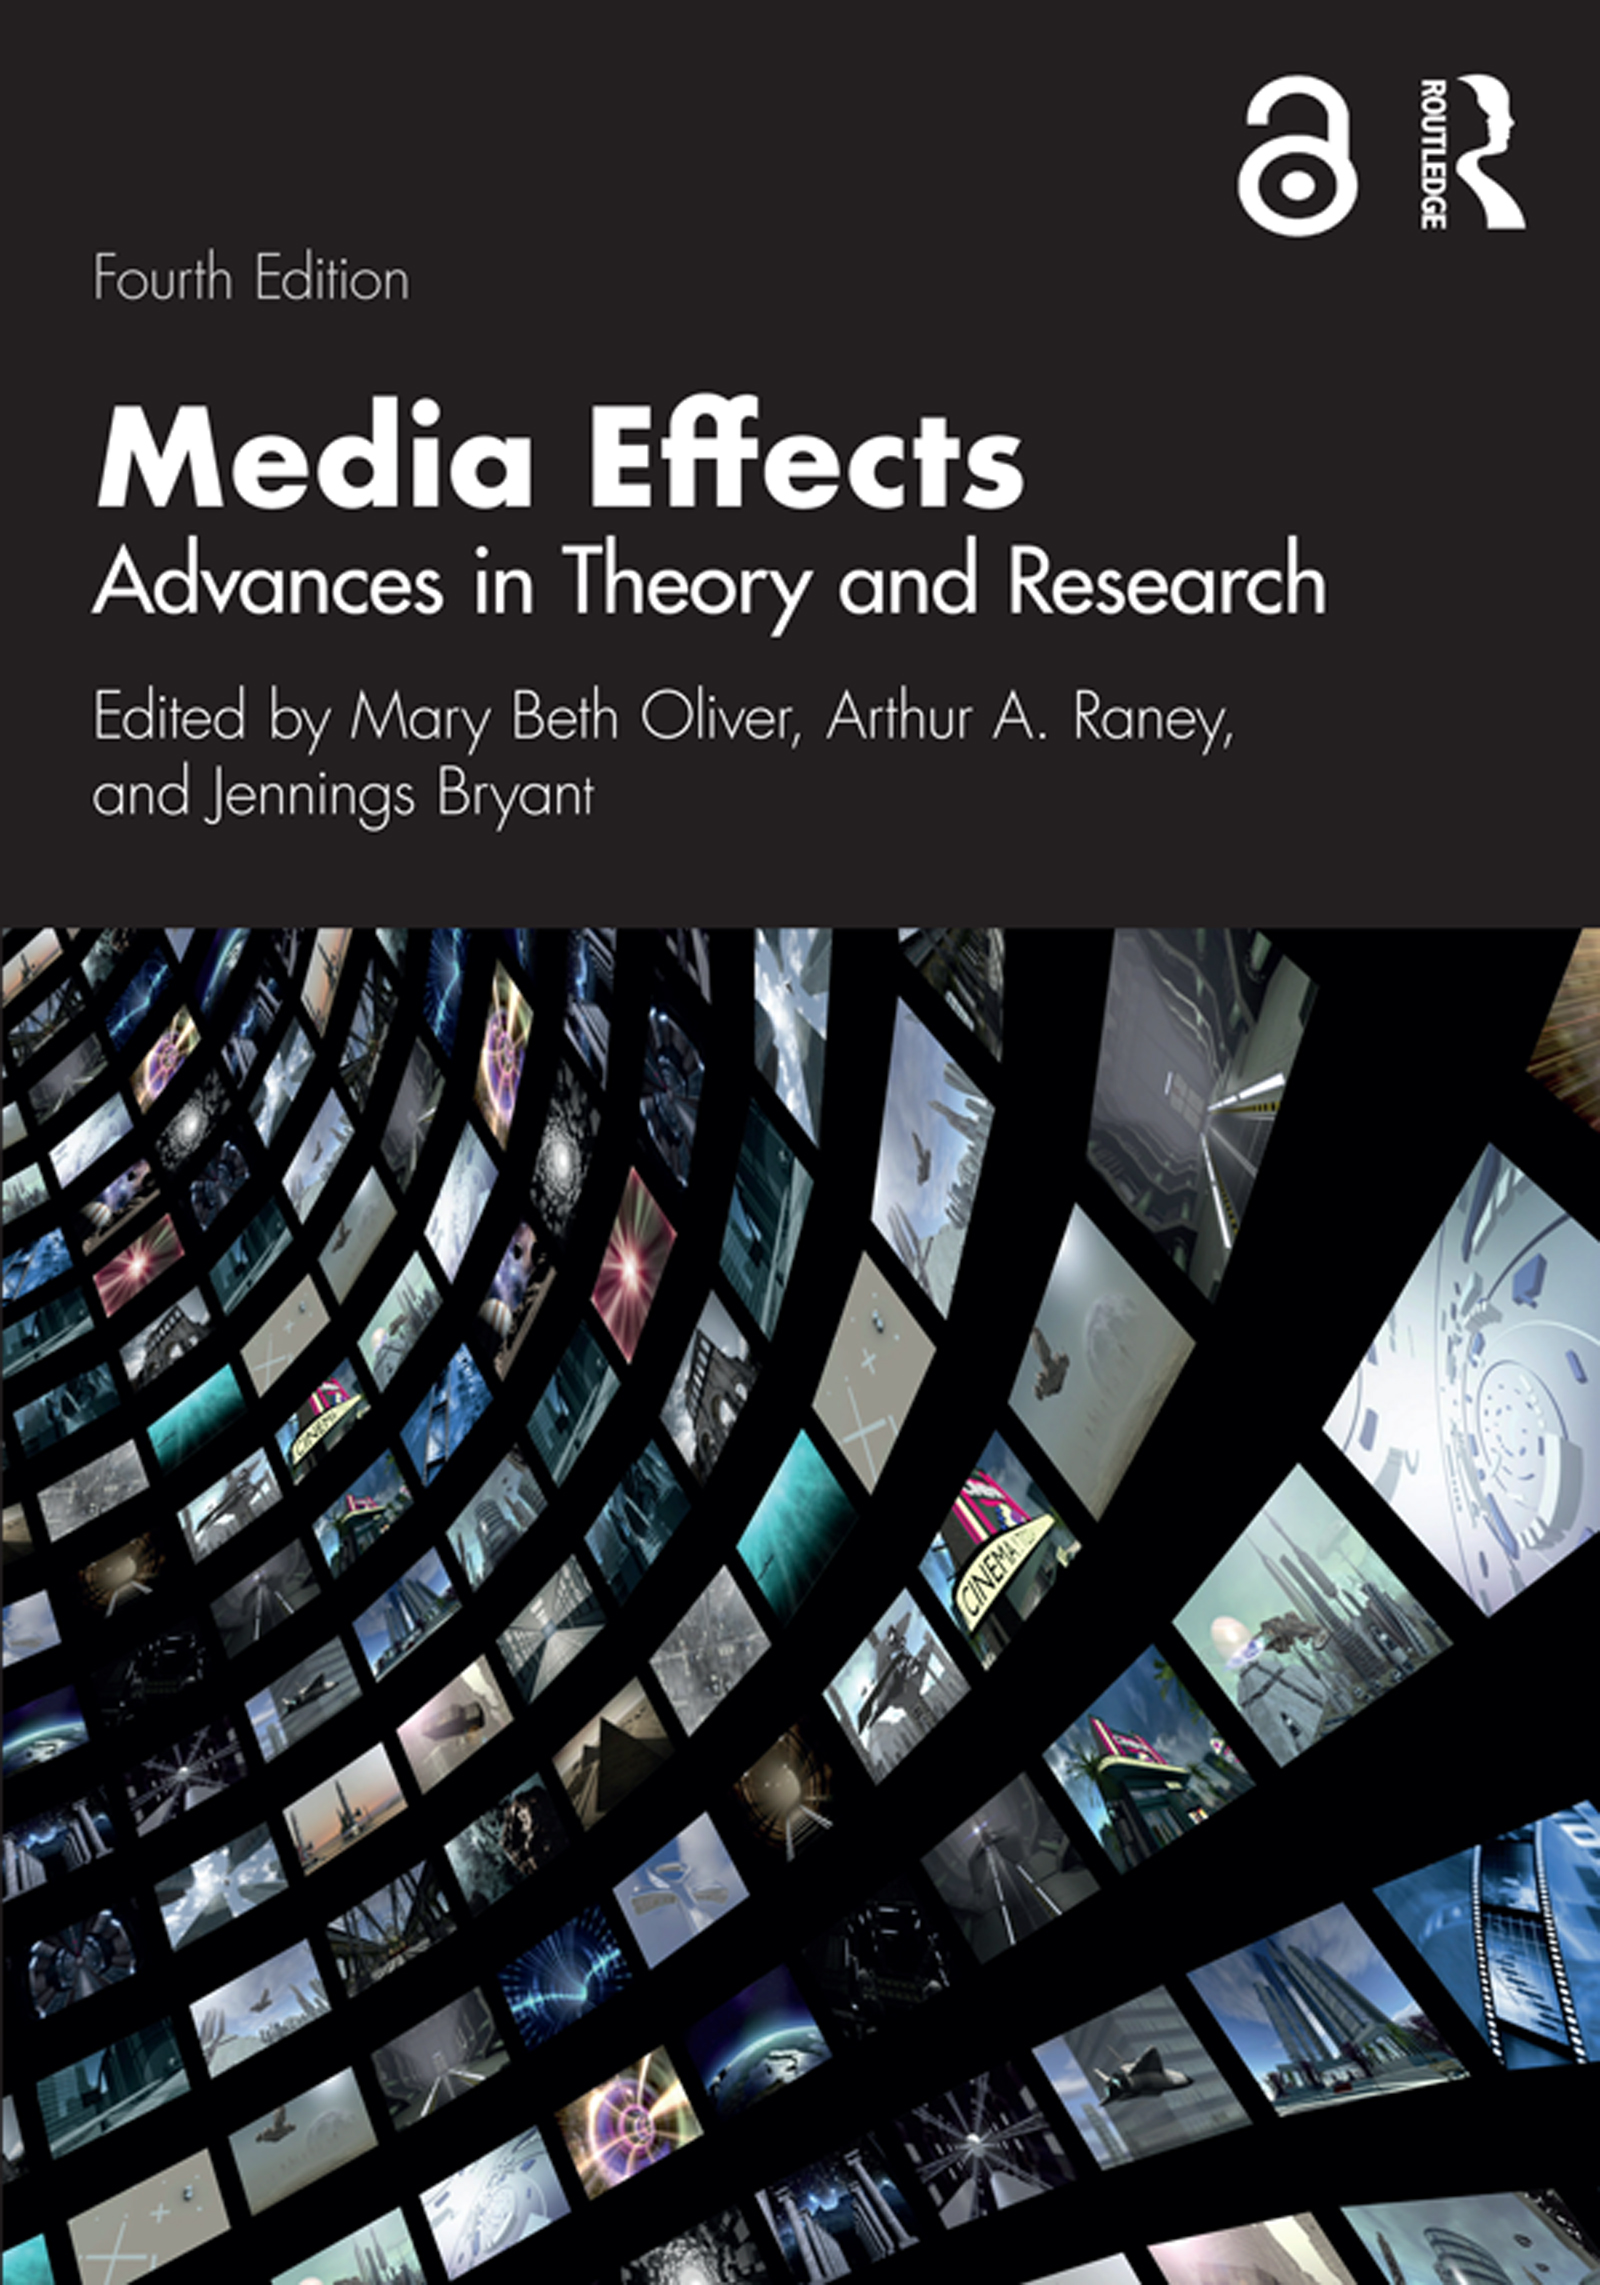 Media, Identity, and the Self